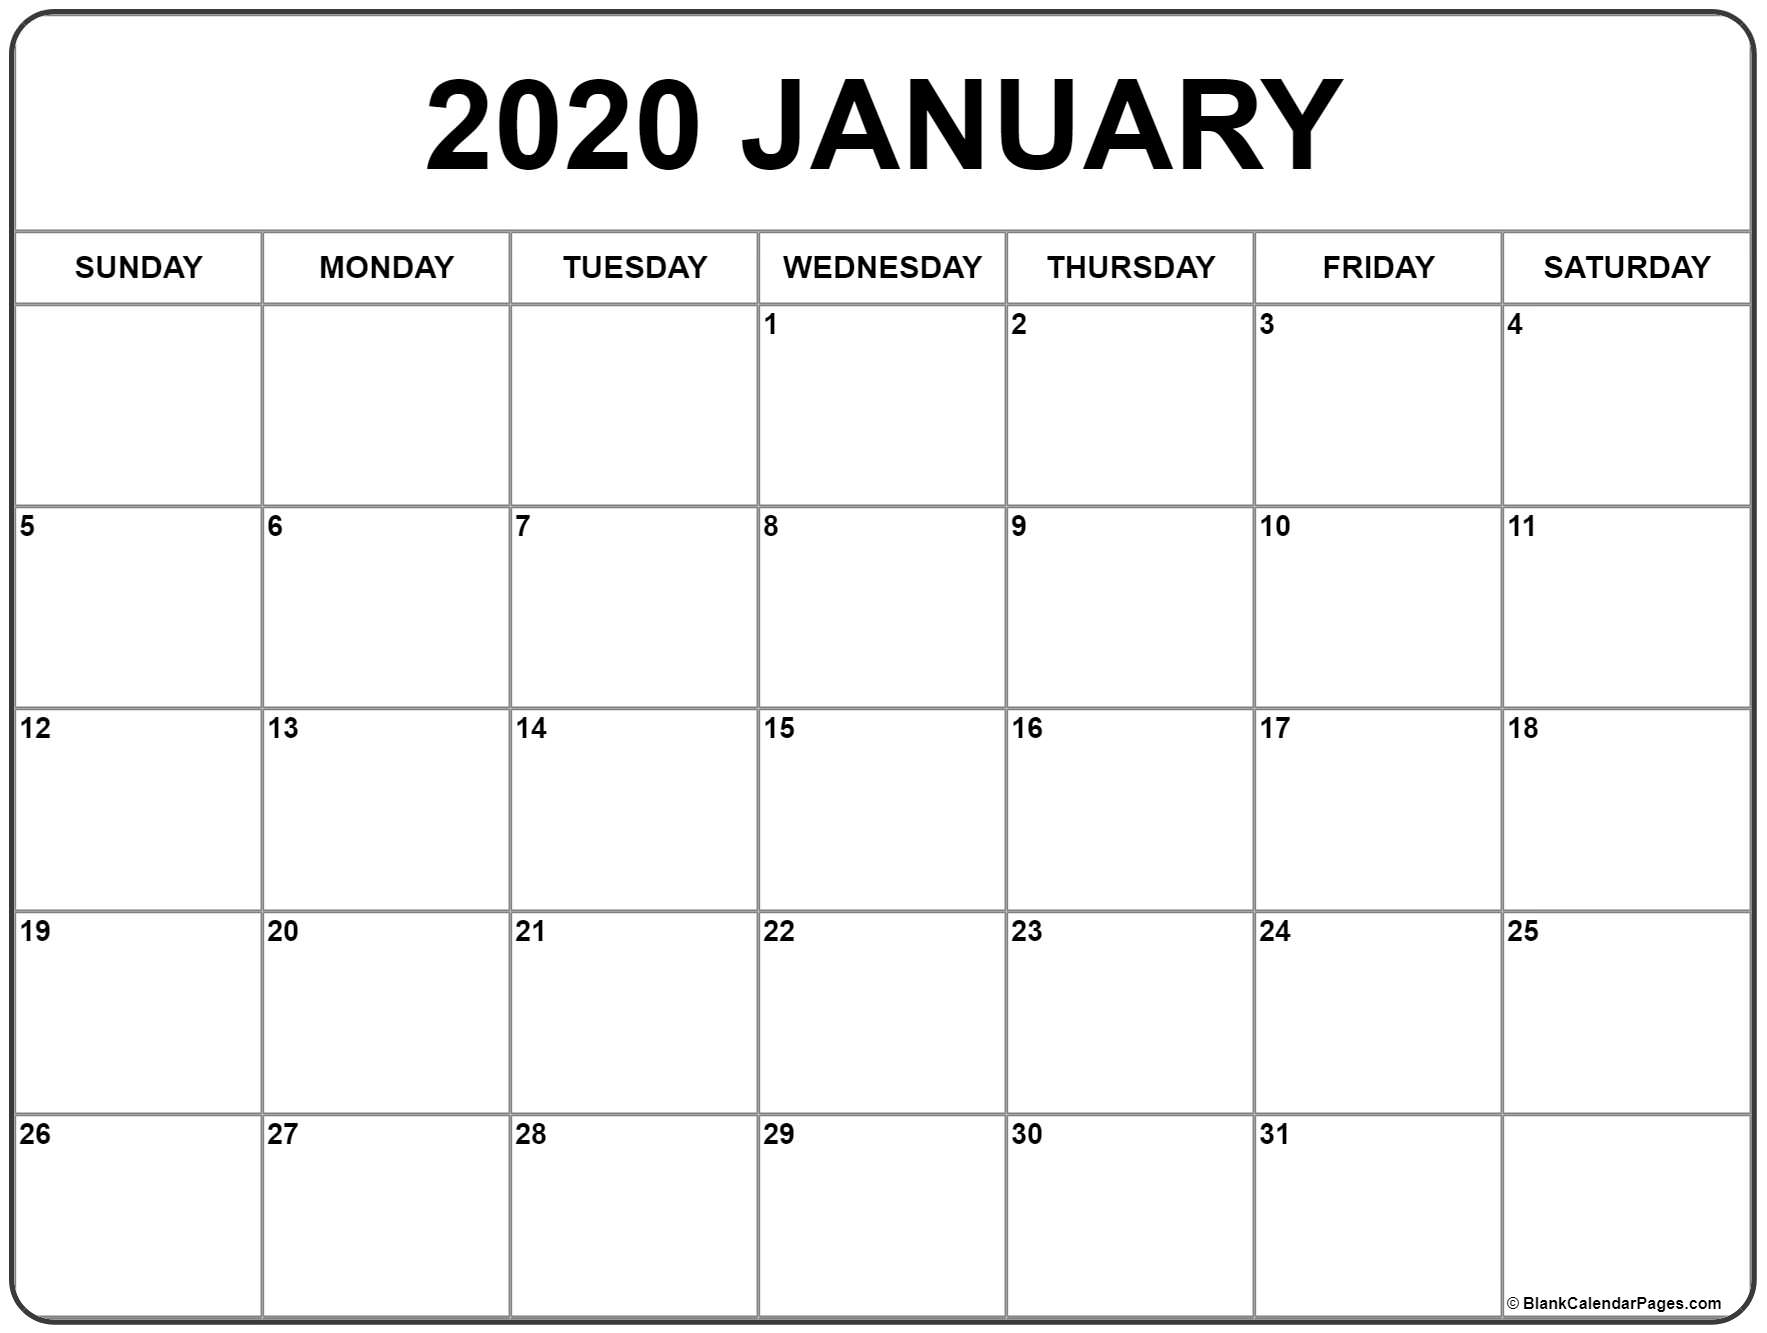 Print Jan 2020 Calendar - Tunu.redmini.co